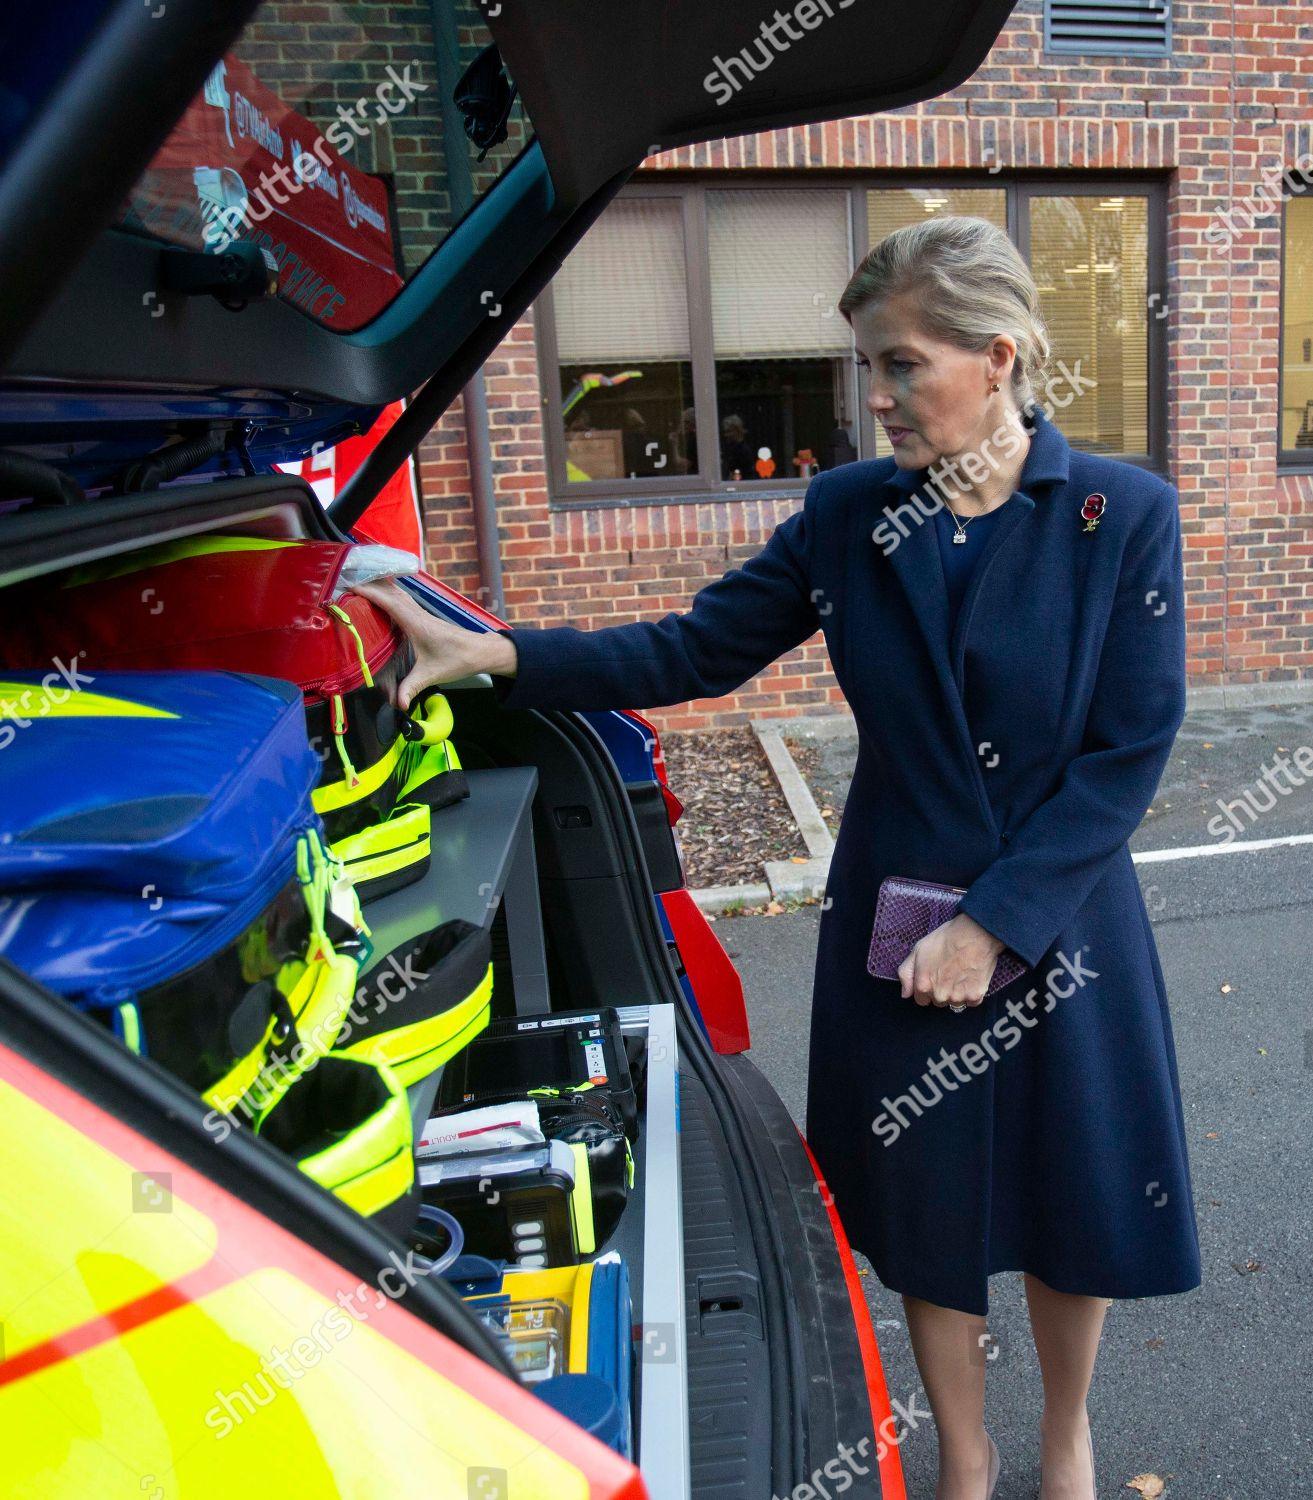 sophie-countess-of-wessex-opens-the-thames-valley-air-ambulance-headquarters-stokenchurch-buckinghamshire-uk-shutterstock-editorial-9968468b.jpg